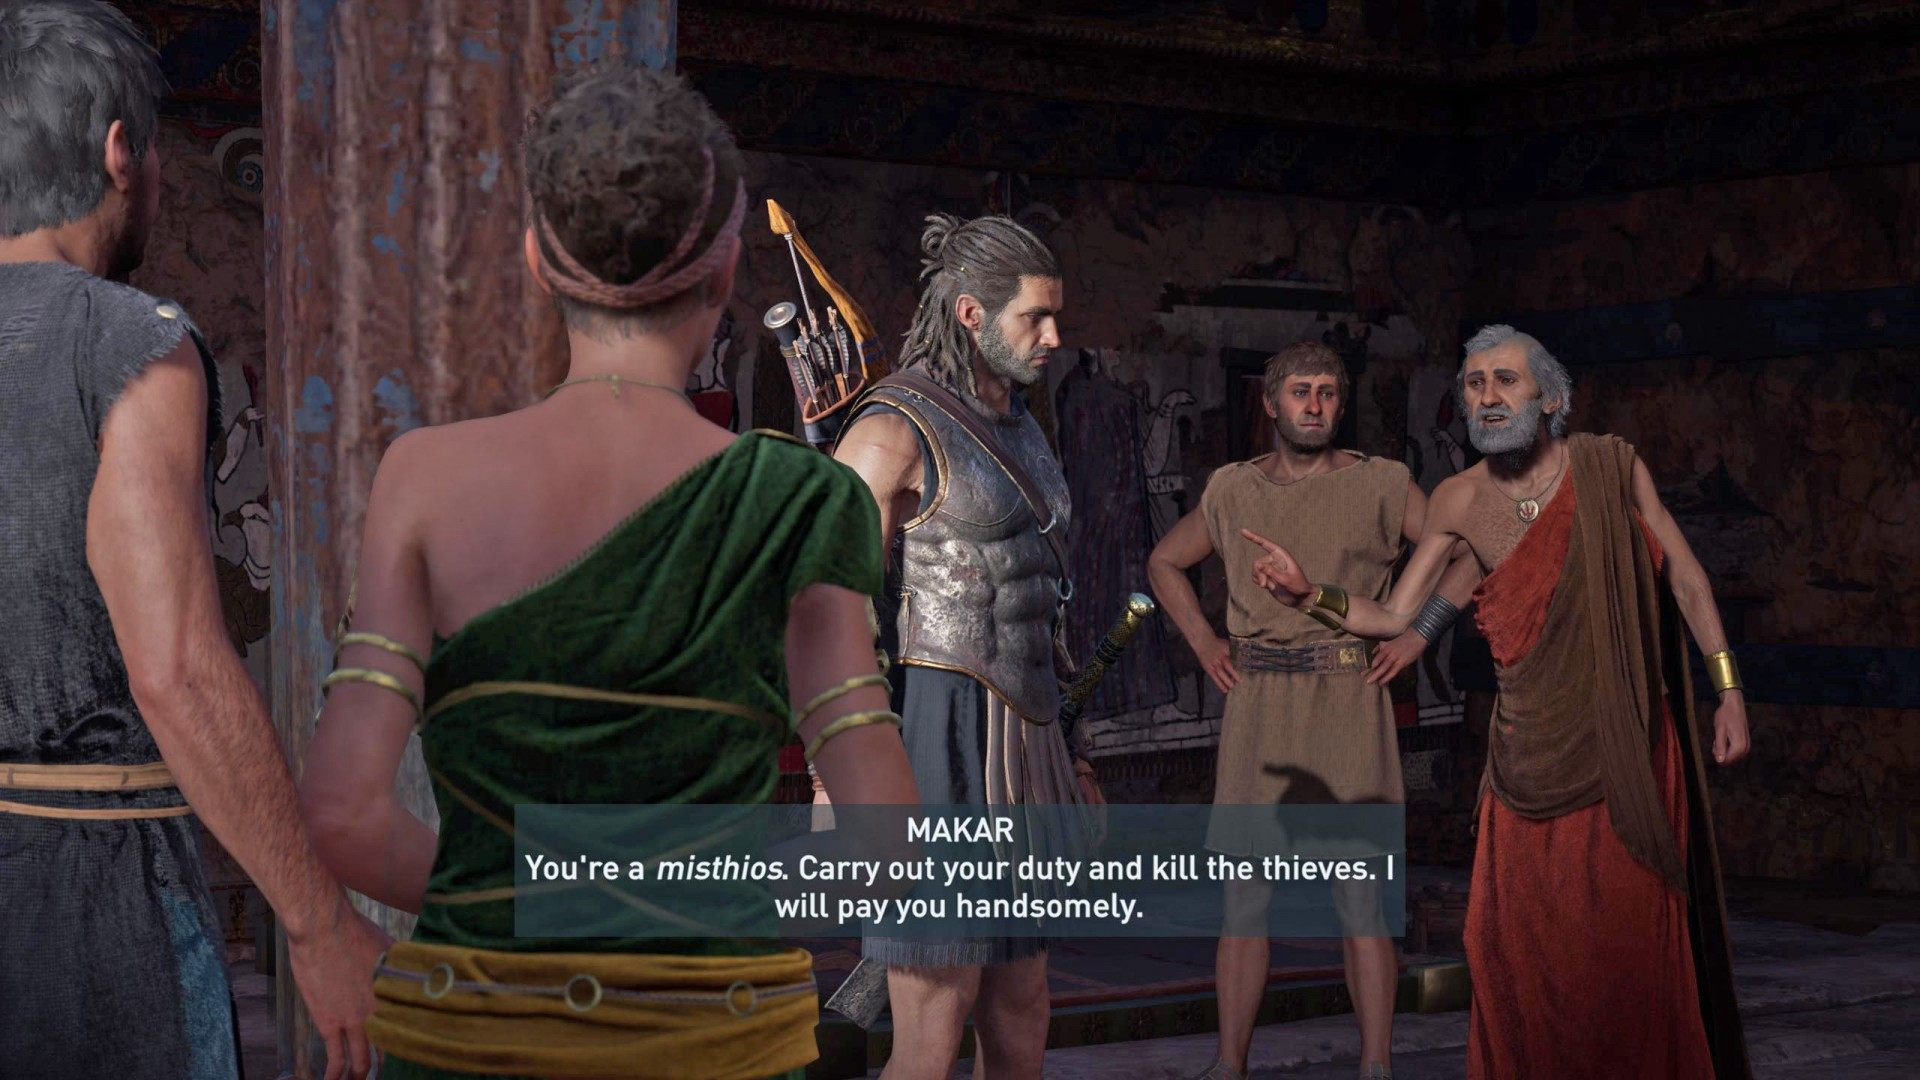 The Drachmae of Romance, Assassin's Creed Odyssey Quest